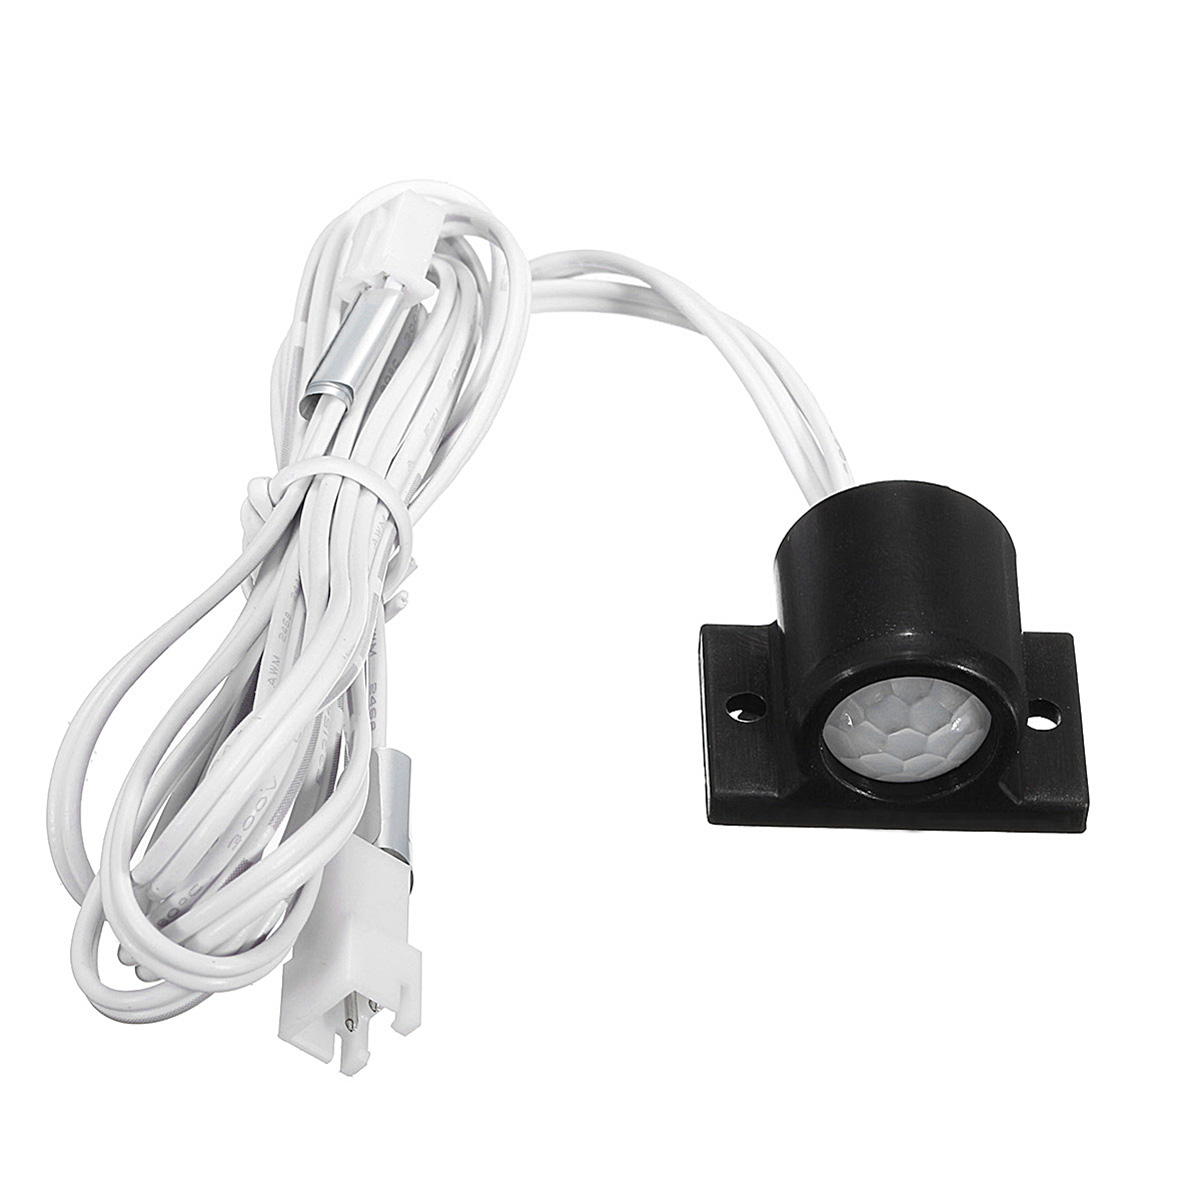 140 Degree Mini Outdoor Adjustable Auto Pir Infrared